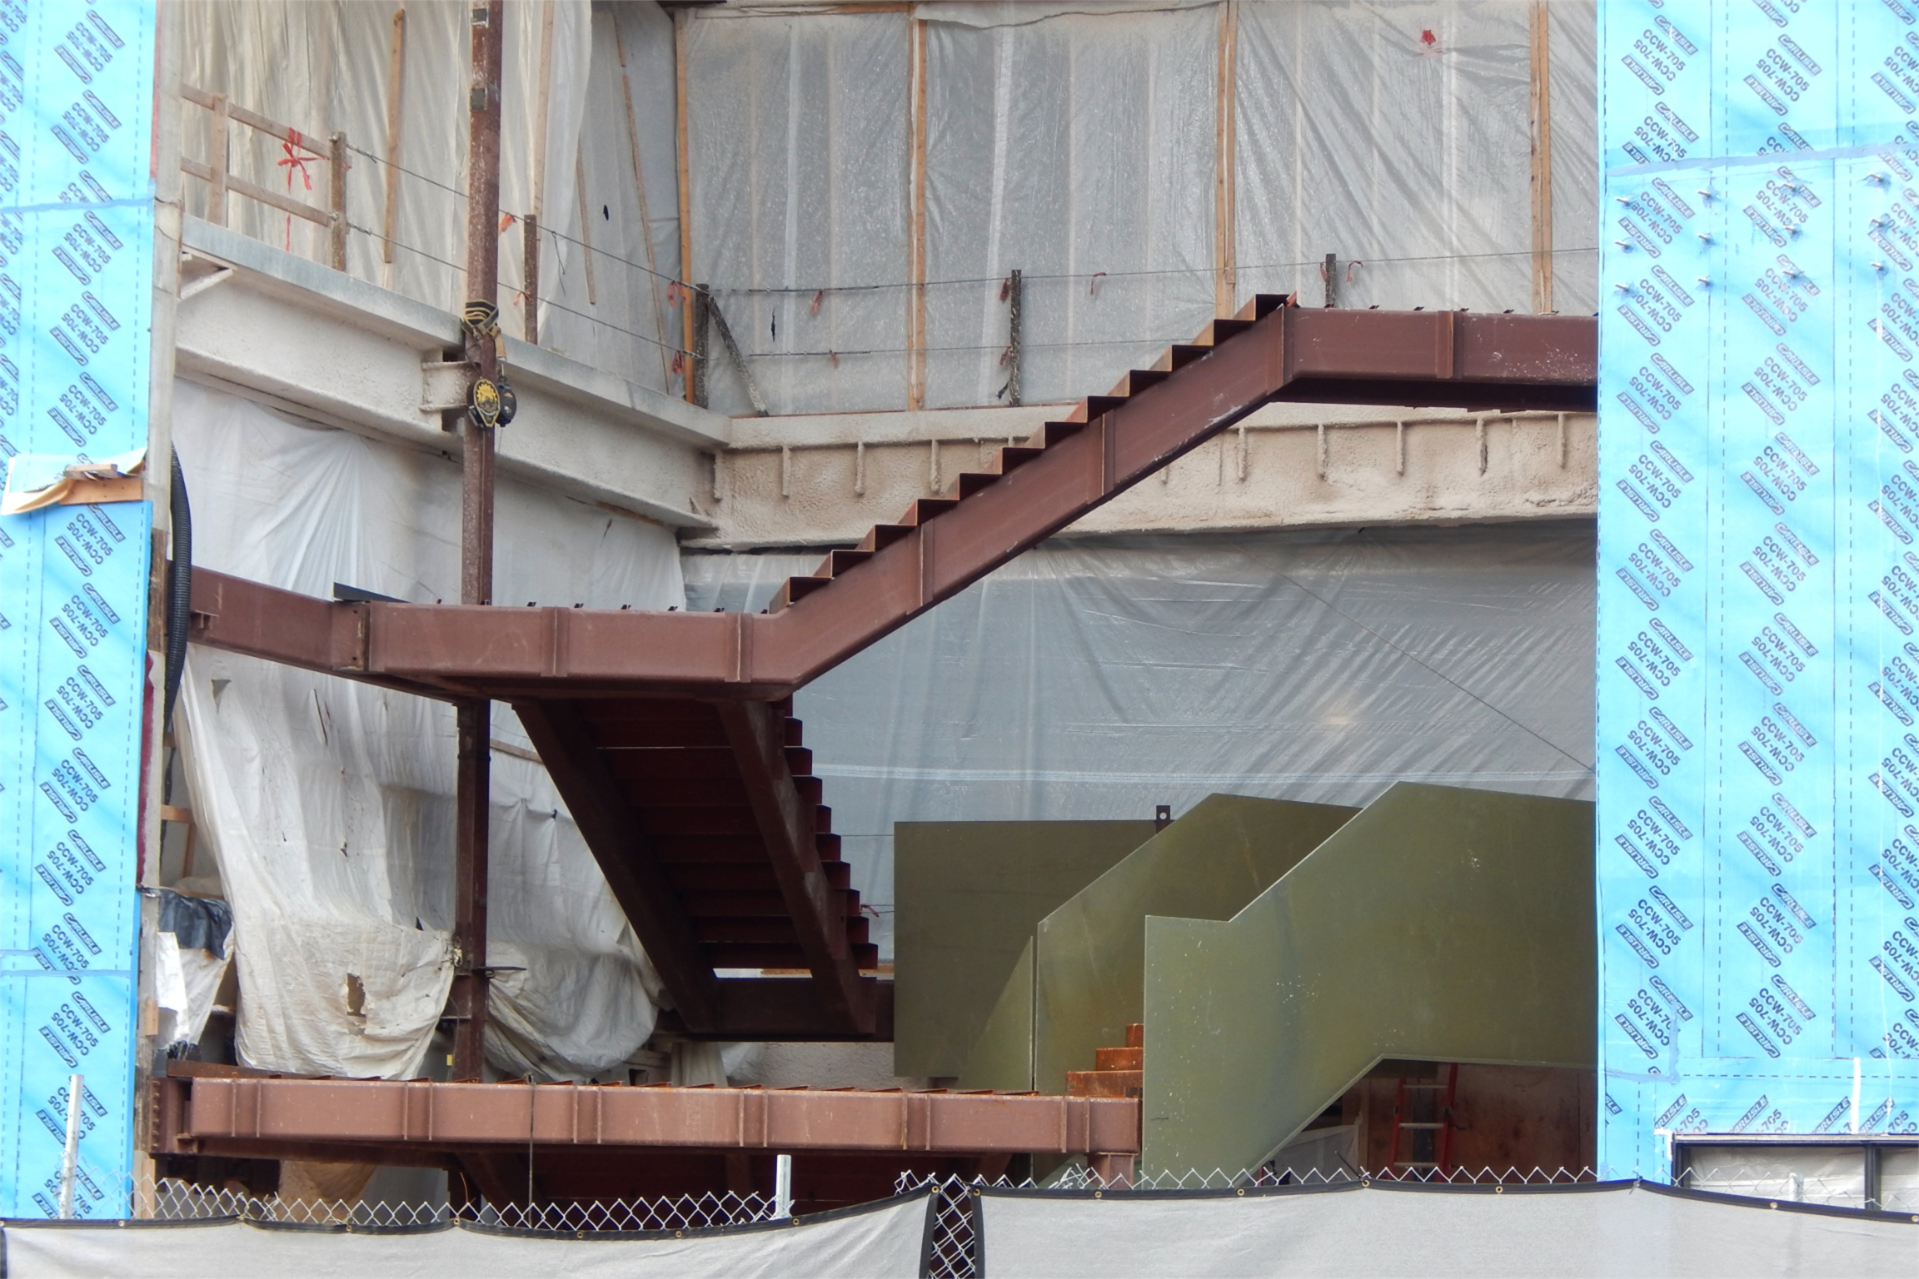 Shown on Sept. 22, the Monumental Stairs have reached the Bonney center's second floor. (Doug Hubley/Bates College)